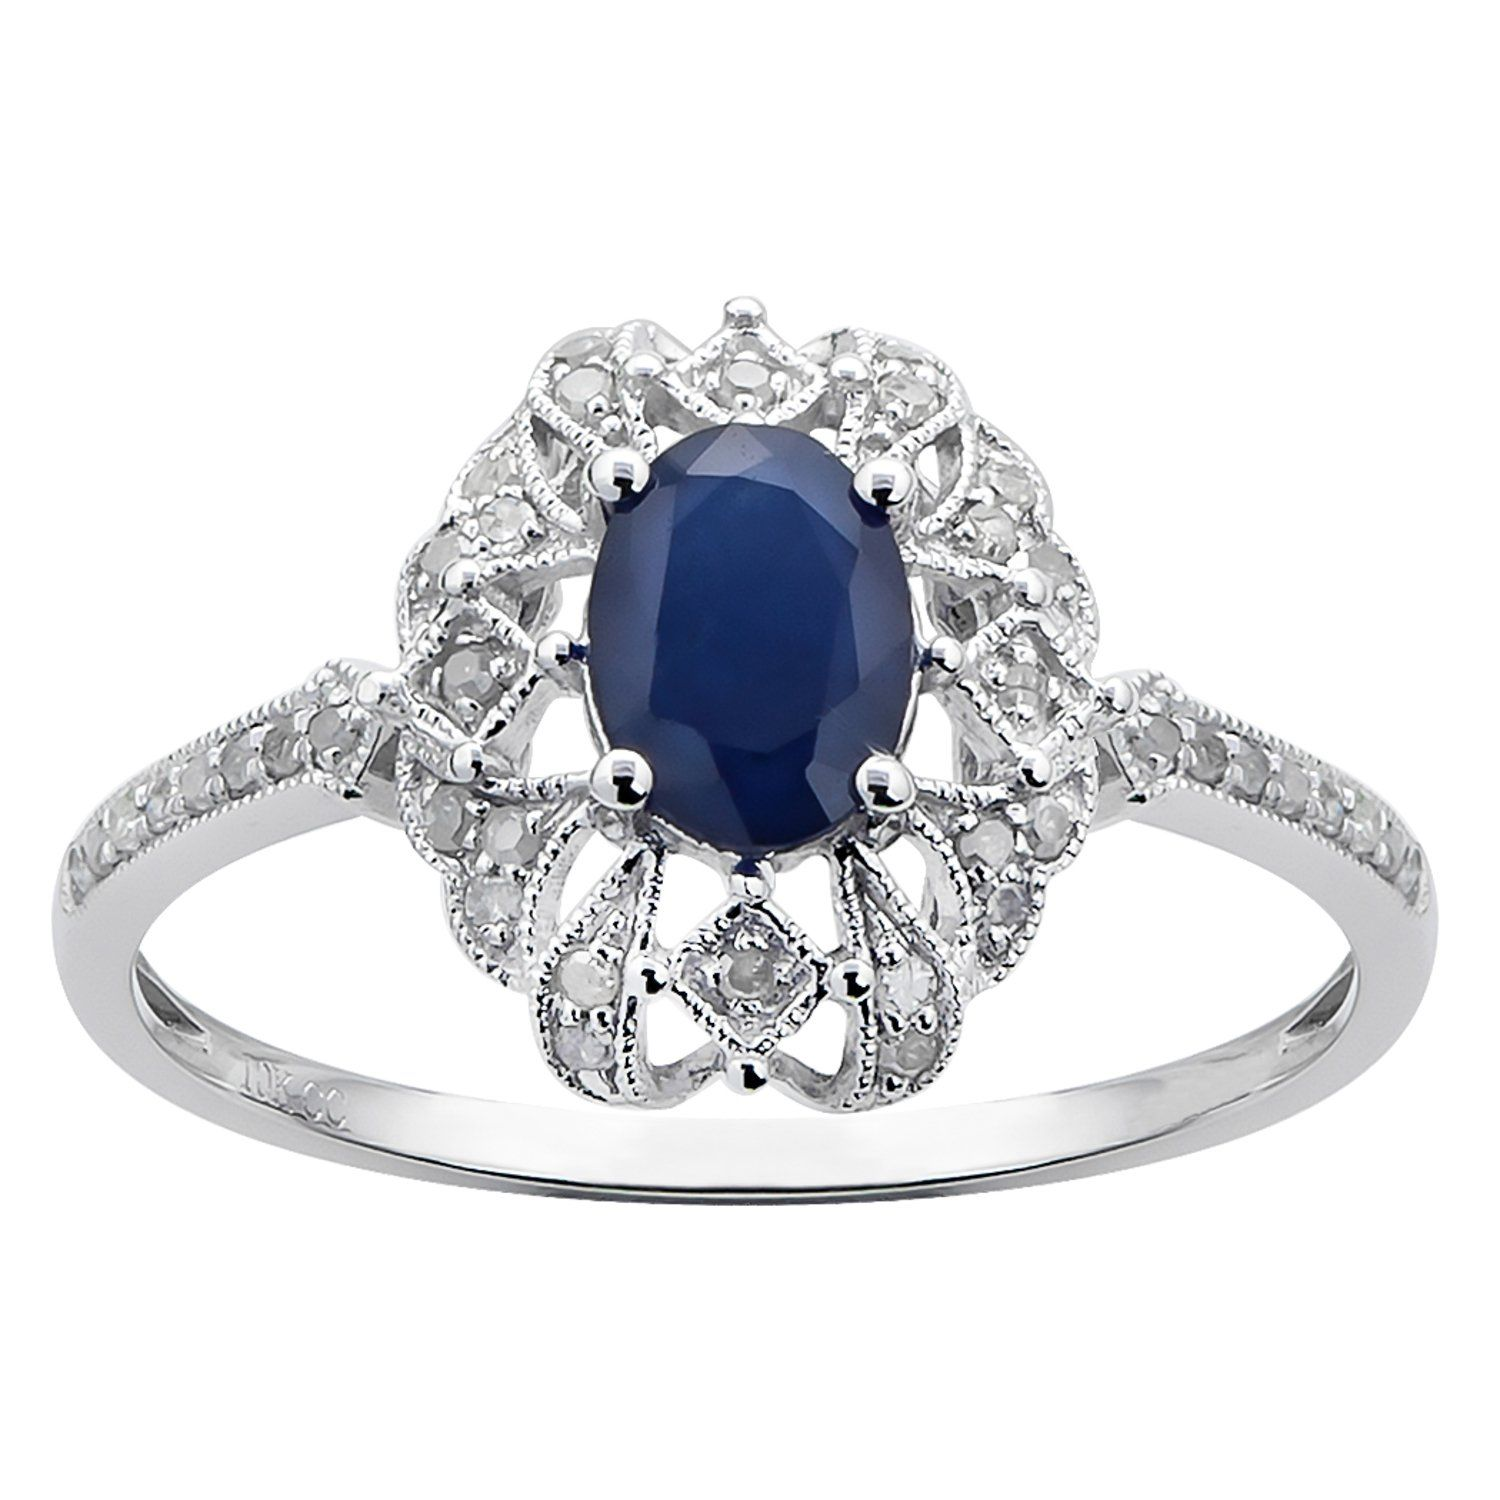 10k White Gold Genuine Oval Vintage Style Sapphire and